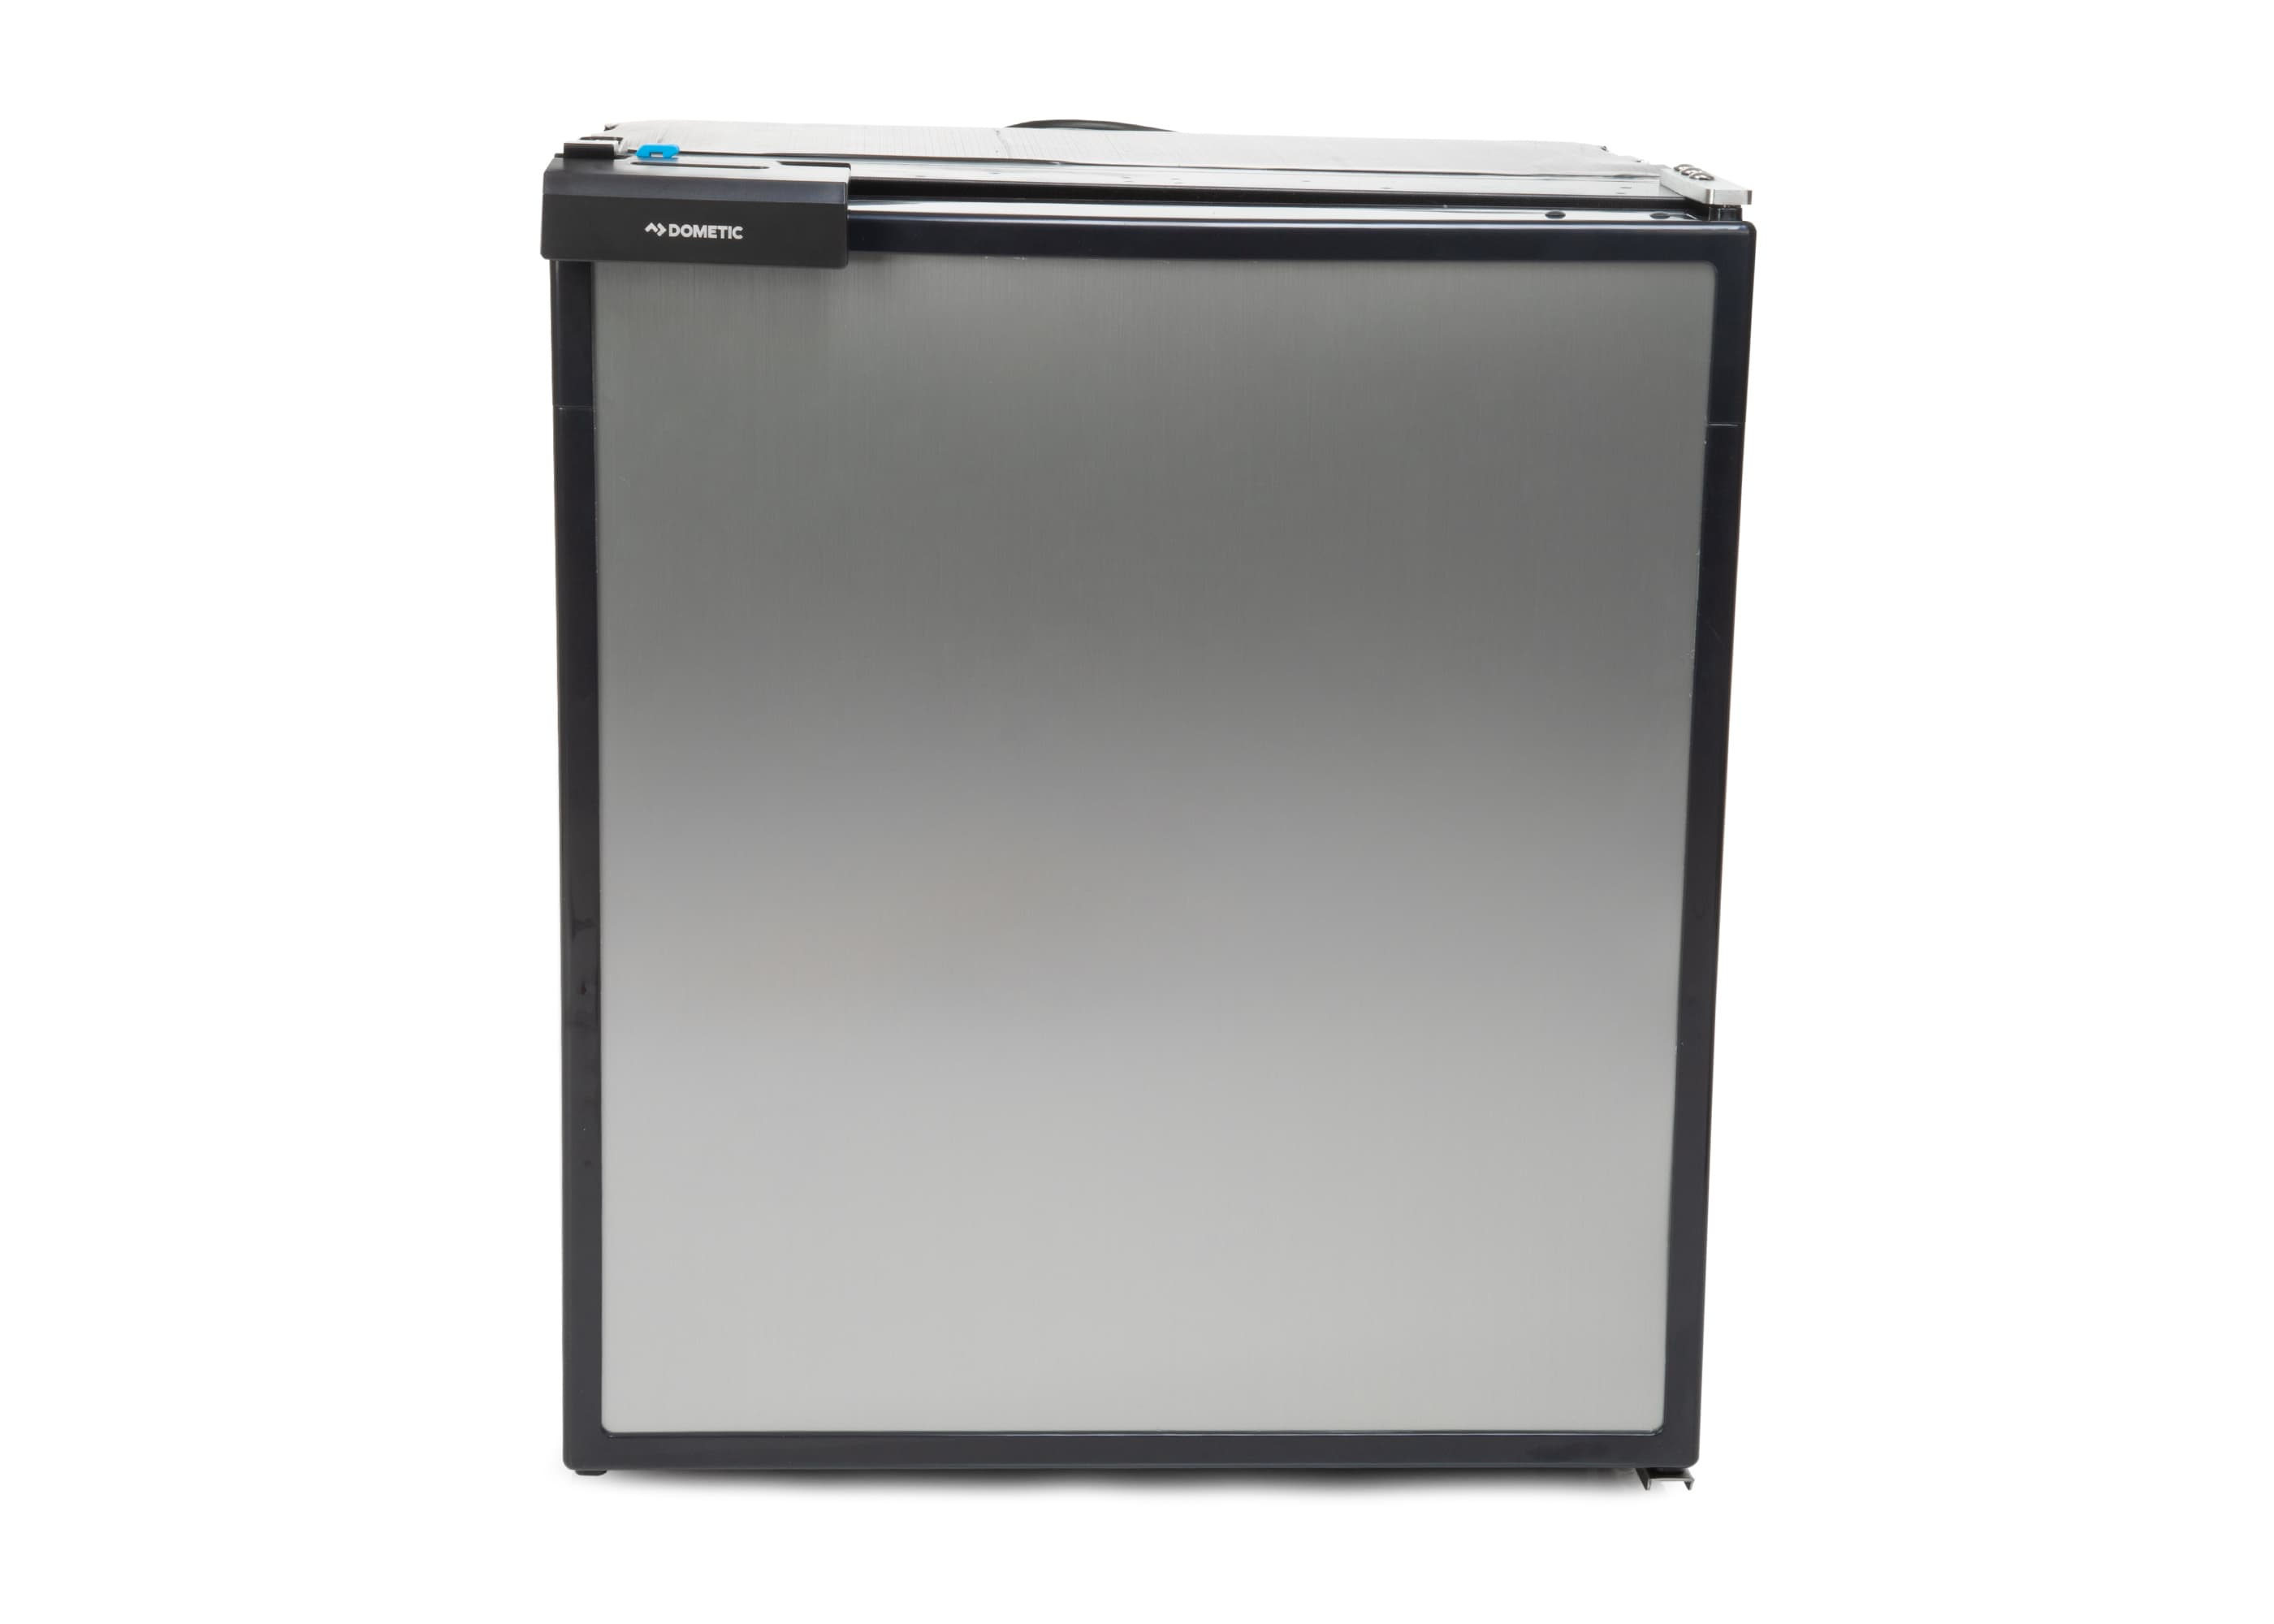 Kühlschrank Dometic : Refrigerator cre 65 product images svb yacht and boat equipment